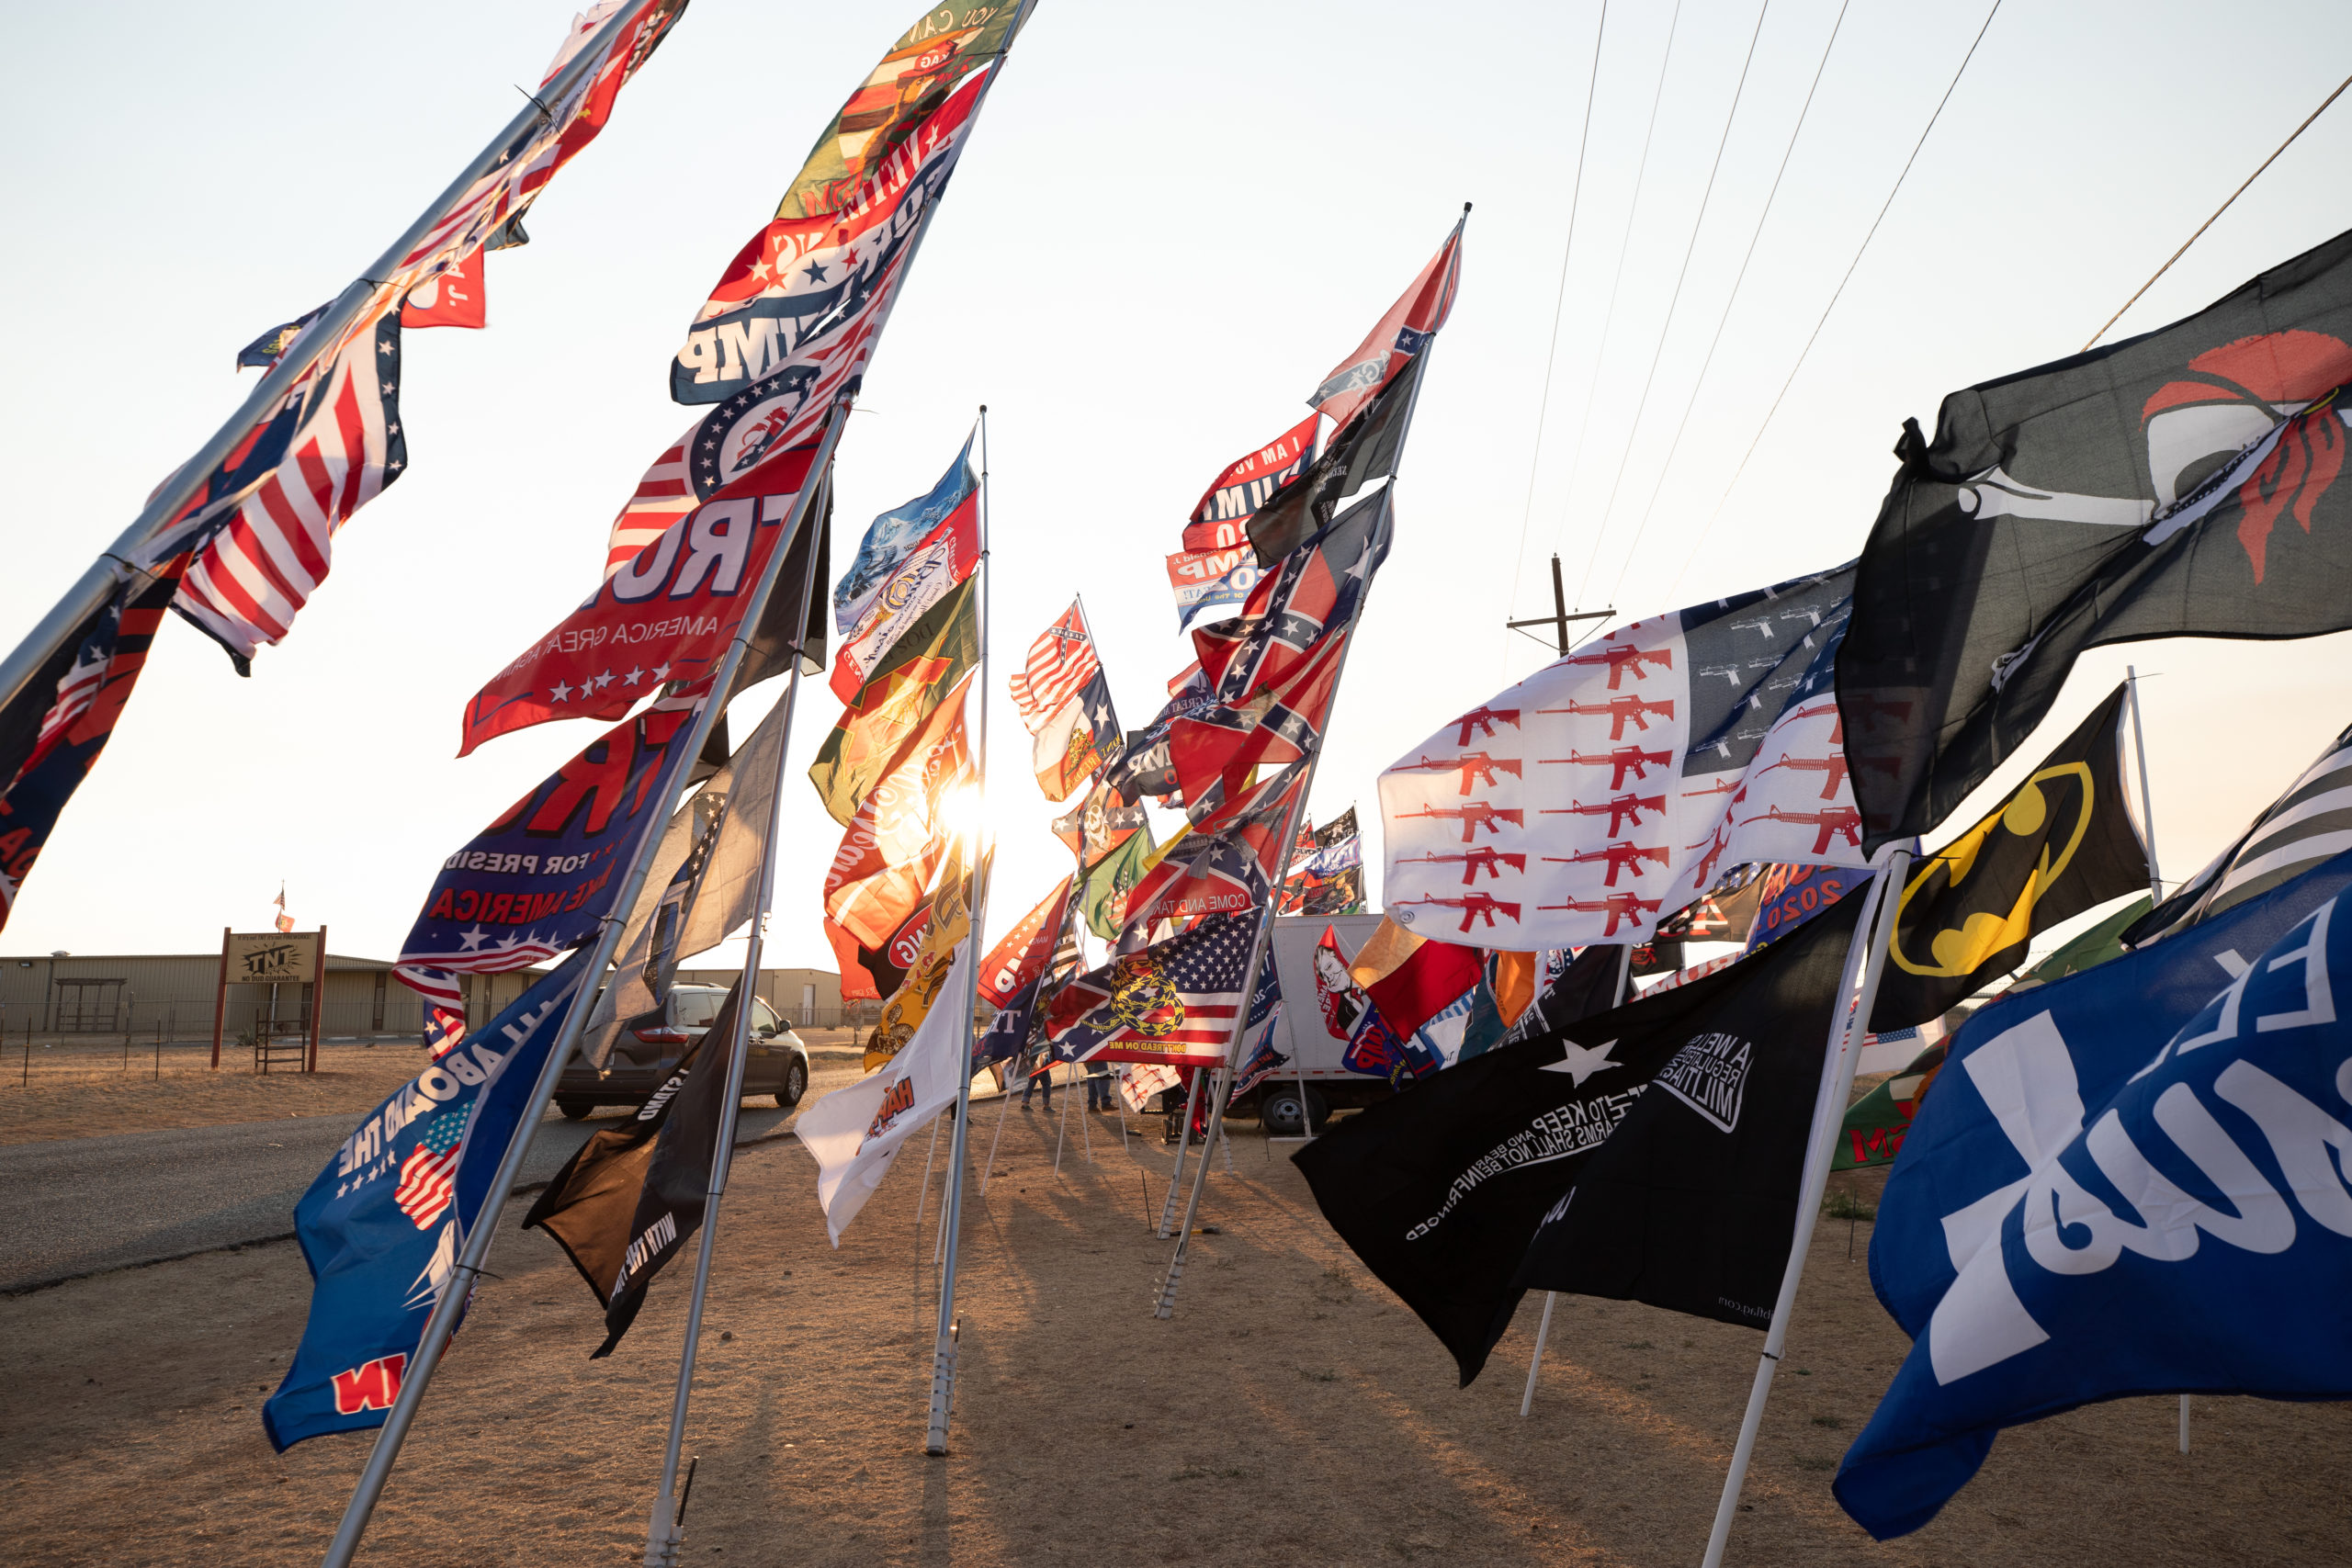 """Flags fly outside Cooks Garage, the meeting place of hundreds of President Donald Trump supporters after a """"Trump Train"""" car parade in Lubbock, Texas, on Sunday, Oct. 18, 2020. (Kaylee Greenlee - DCNF)"""